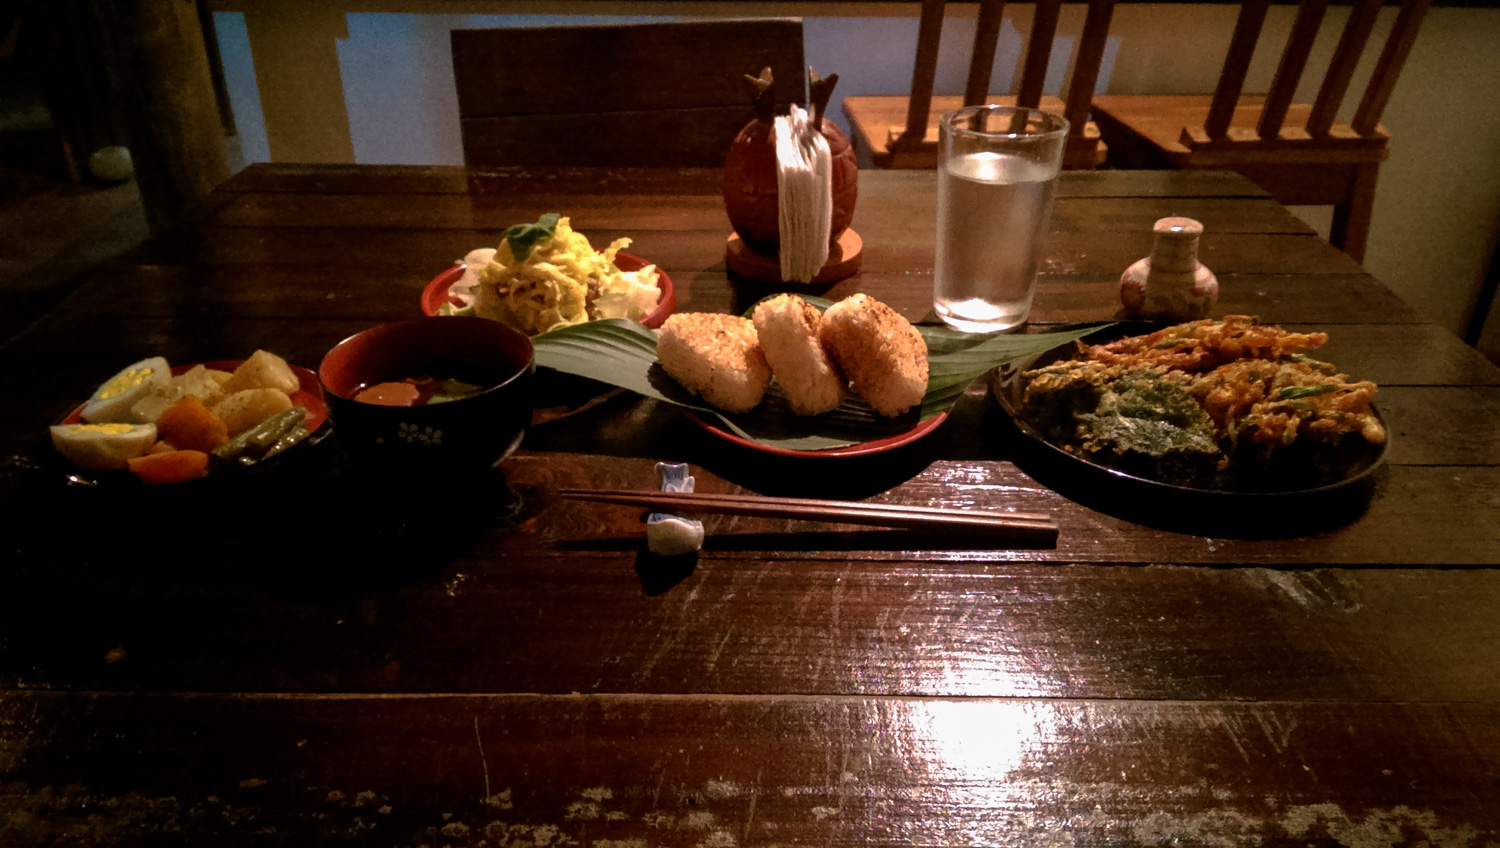 A vegetarian Japanese meal in a small town in Guatemala